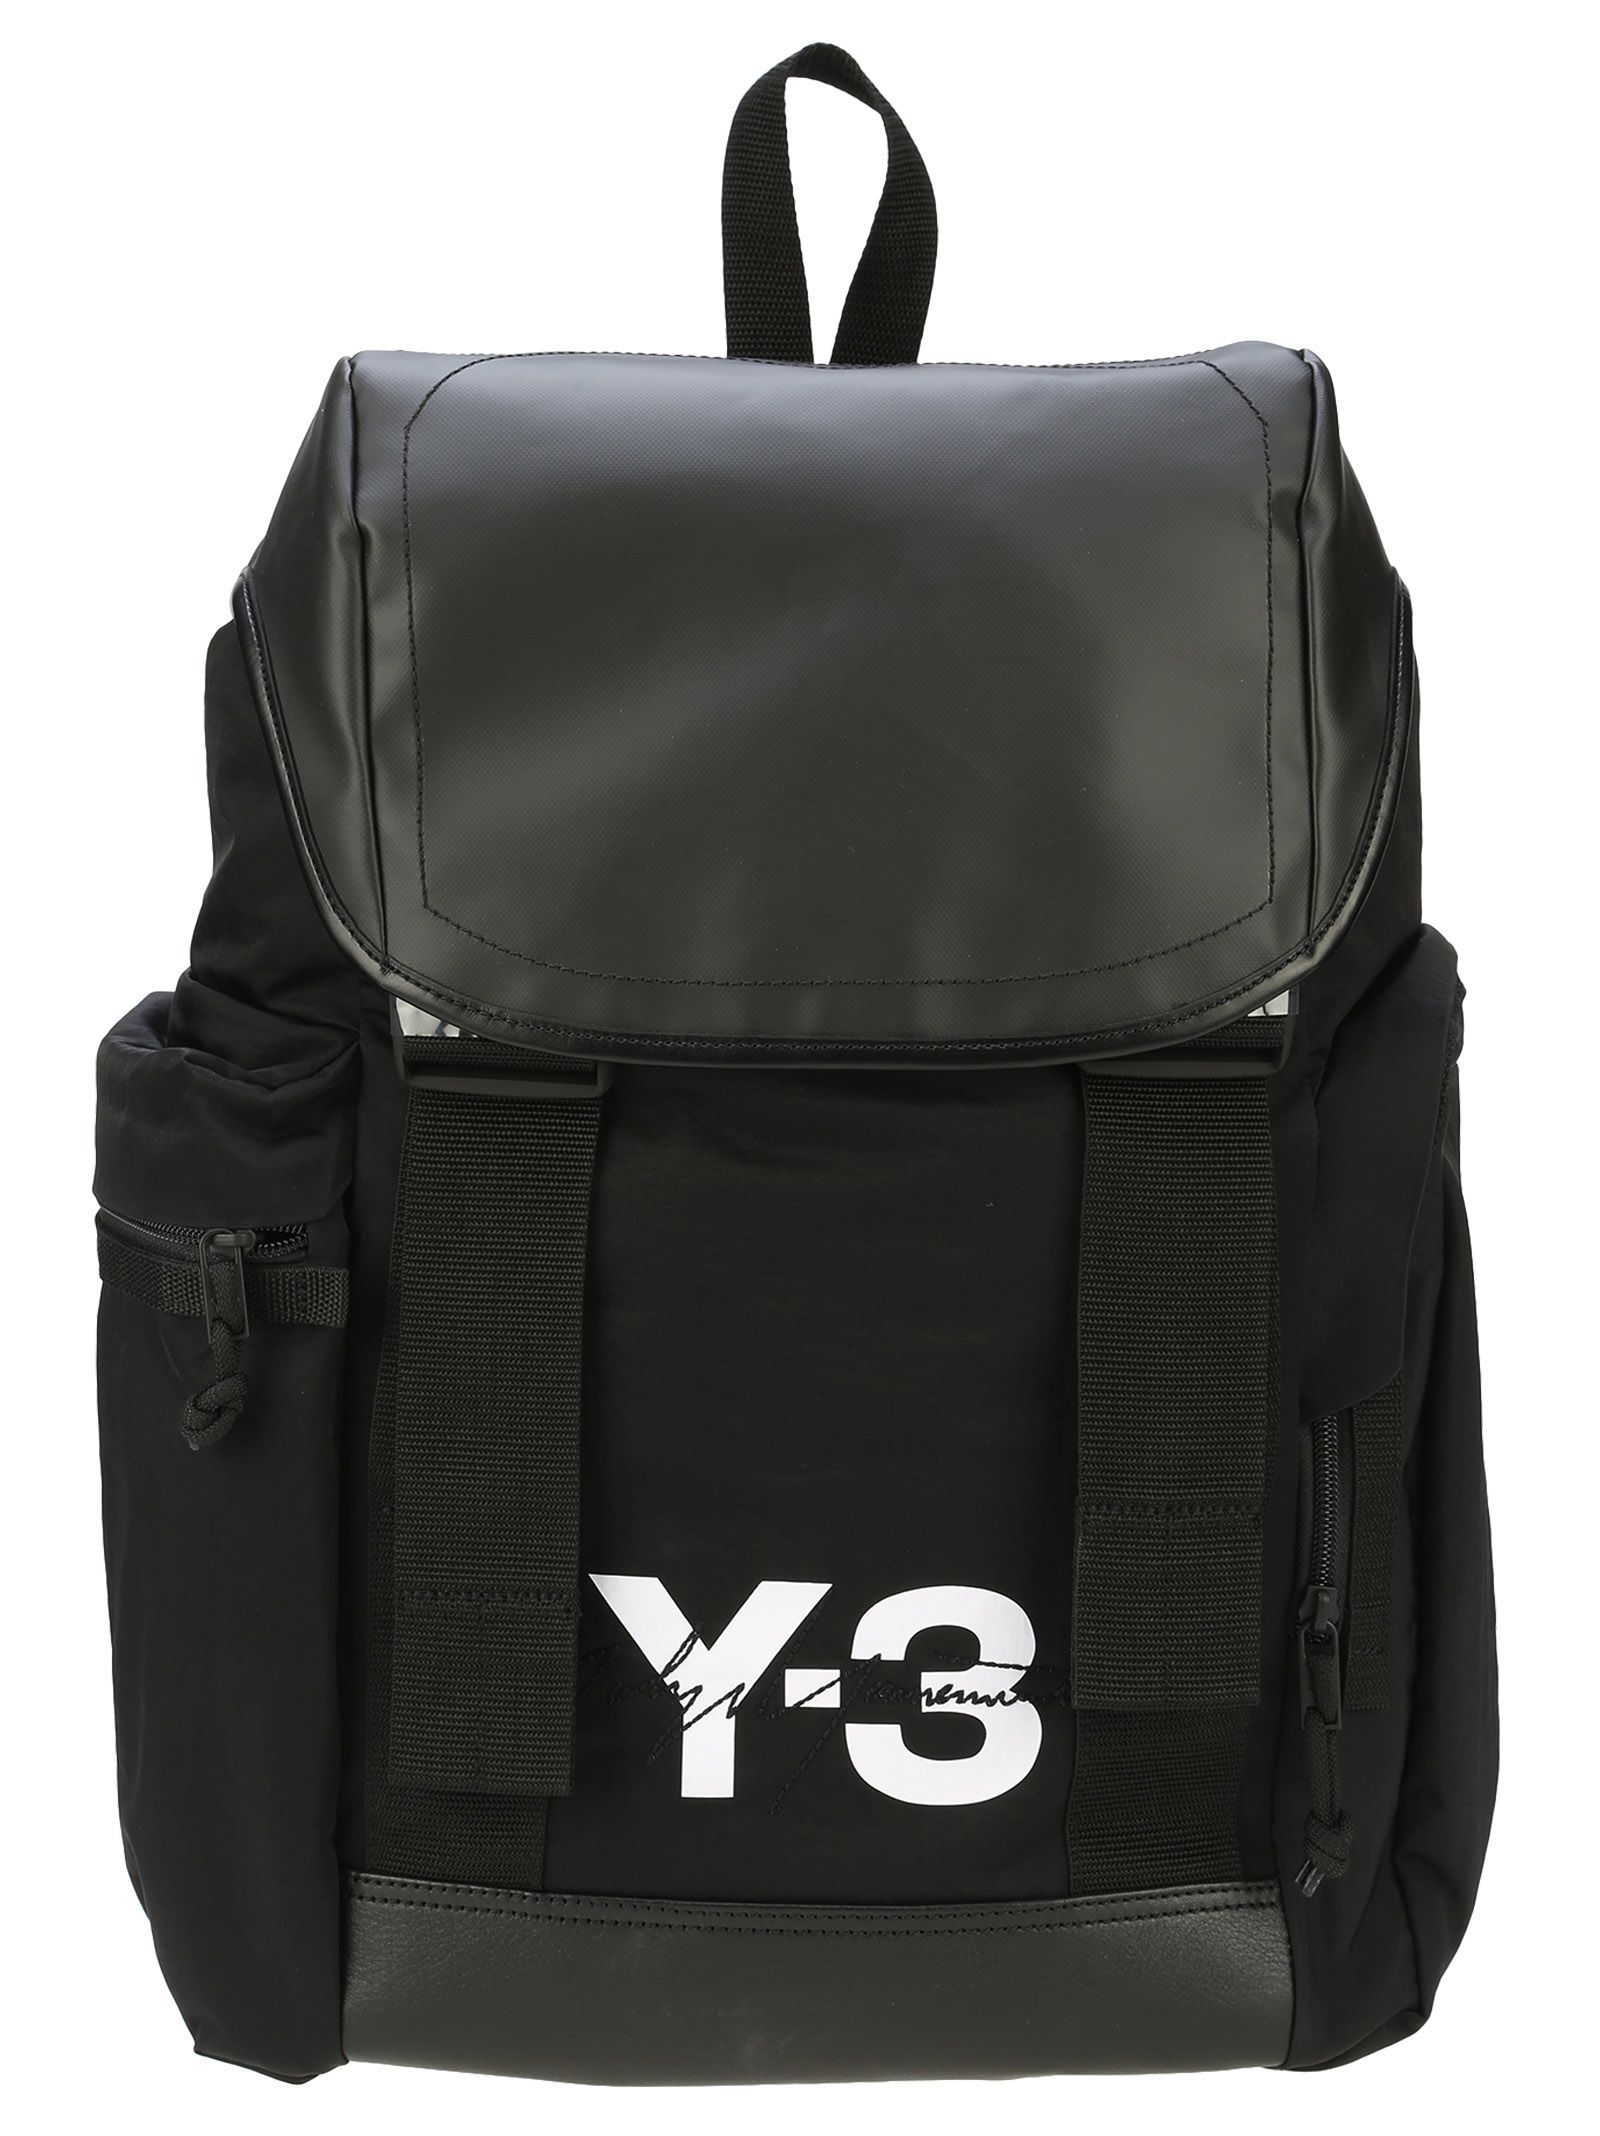 547c07e47 Y-3 ADIDAS Y3 BACKPACK.  y-3  bags  nylon  backpacks